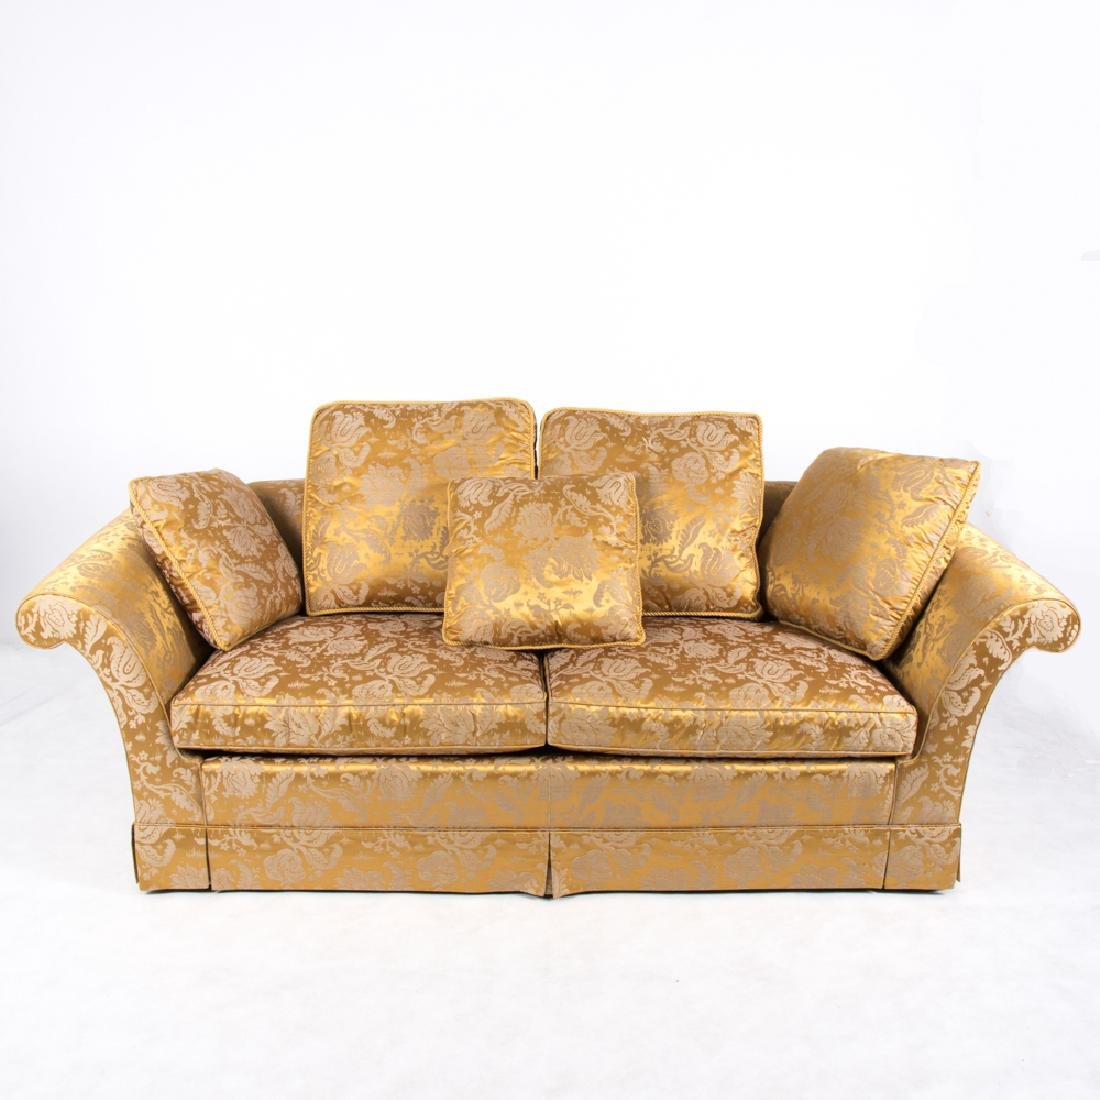 A Baker Furniture Silk and Cotton Carlyle Damask